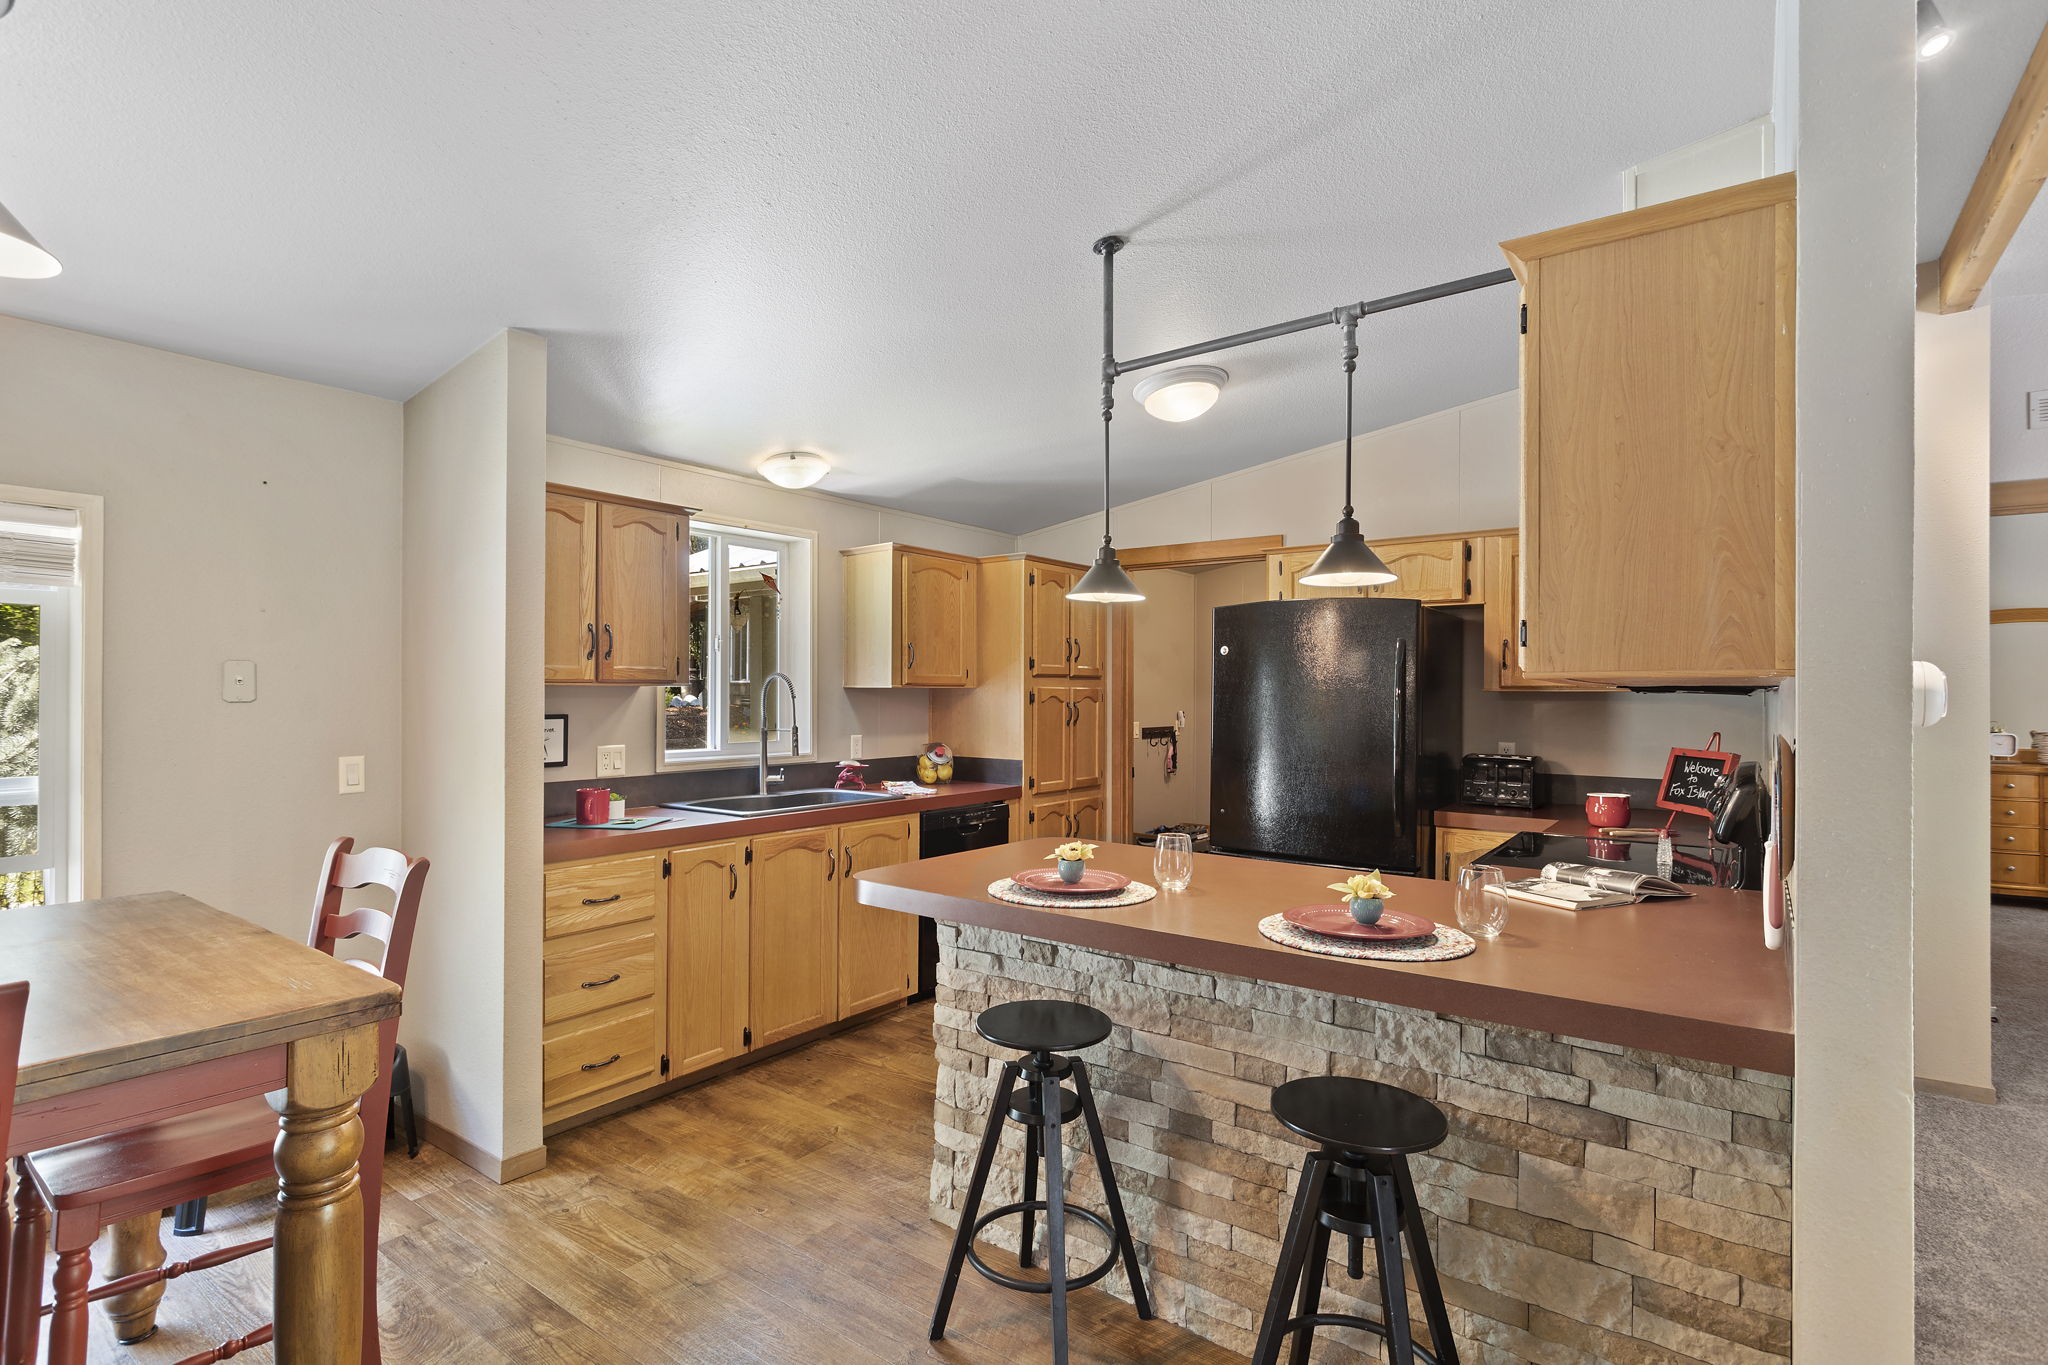 Great kitchen with lots of light, cabinets and counter space for entertaining!